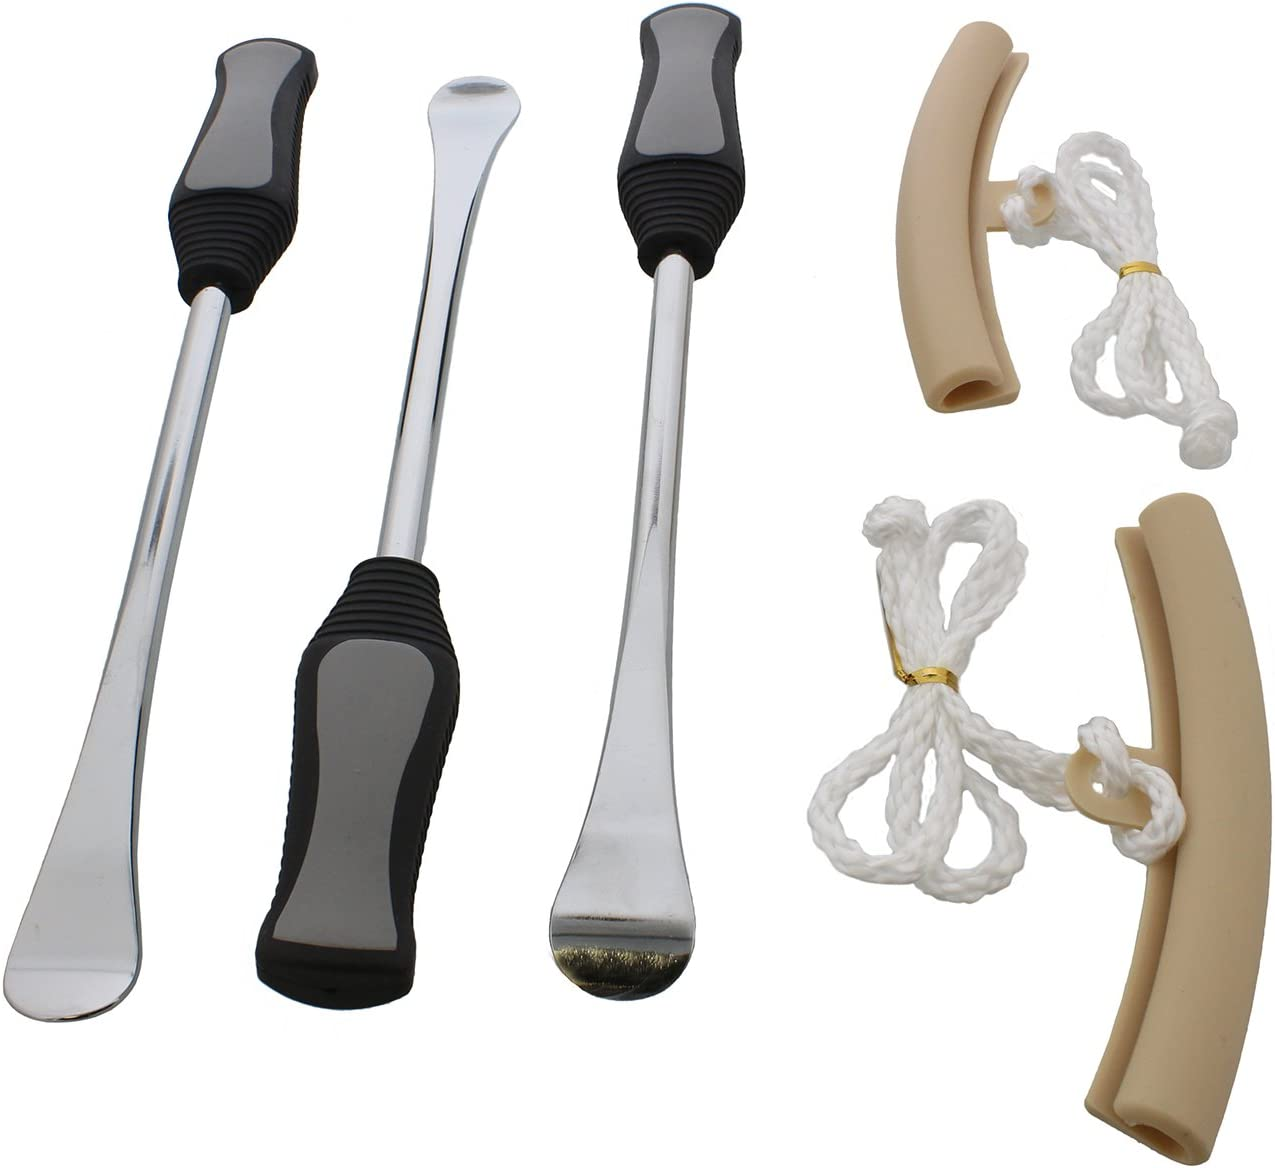 3Pcs Bicycle Repair Tool Tire Pliers Lever Bike Tyre Lever Tool Remove Spoon